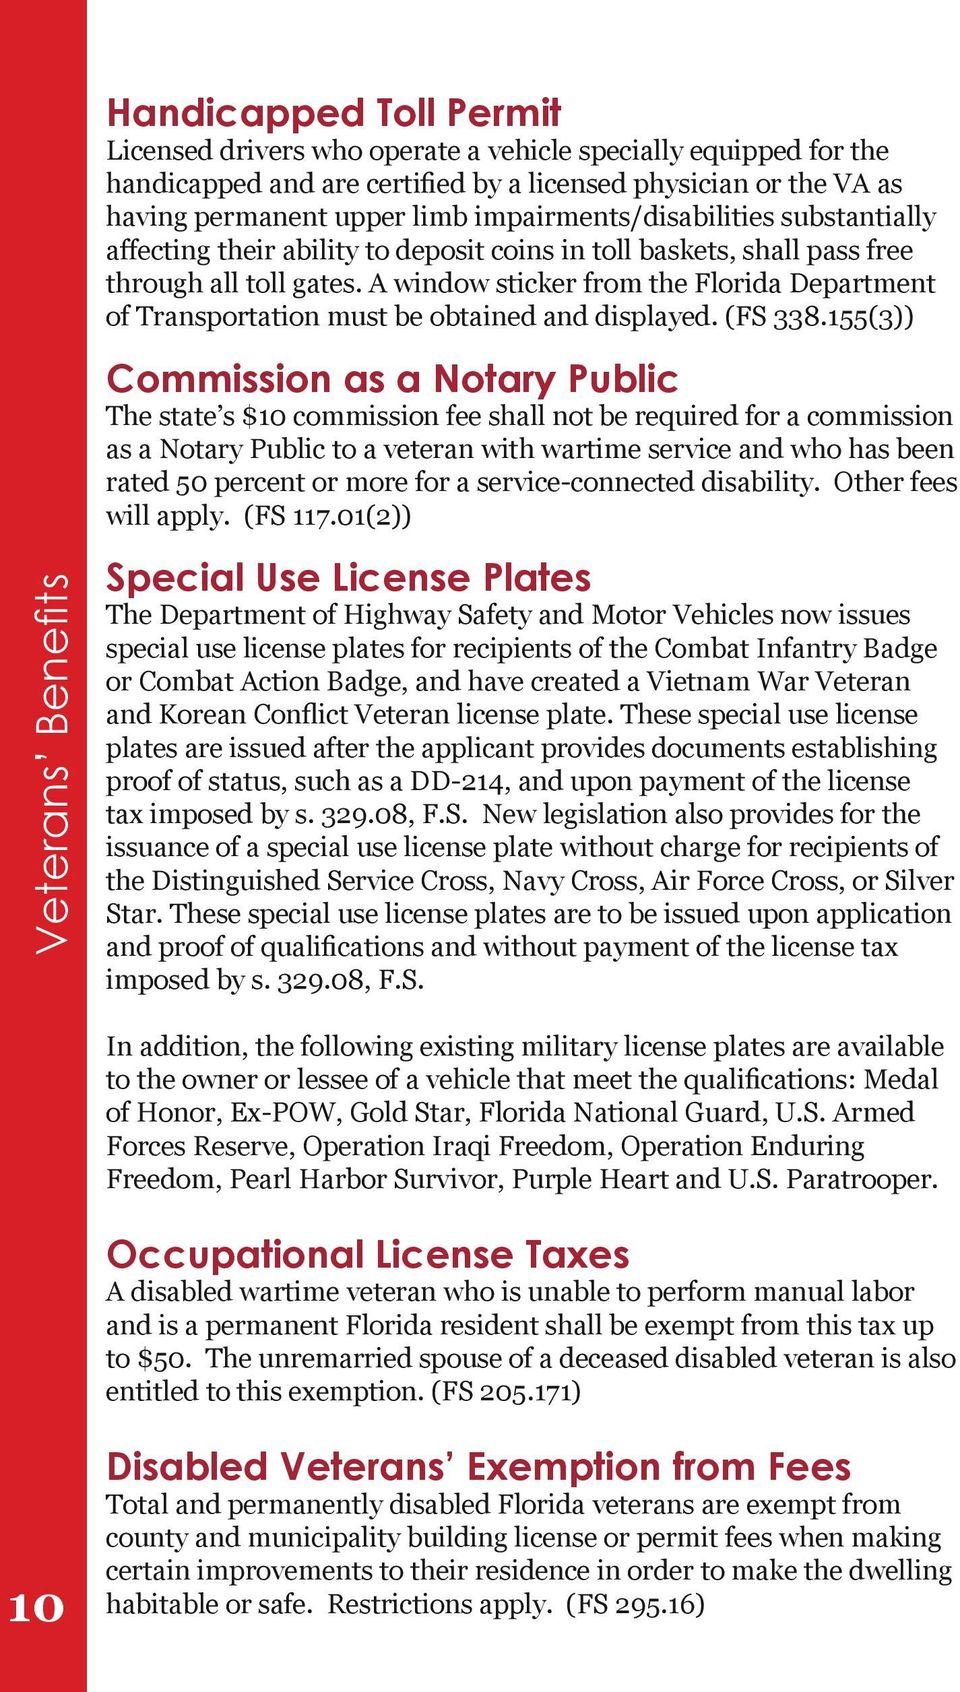 A window sticker from the Florida Department of Transportation must be obtained and displayed. (FS 338.